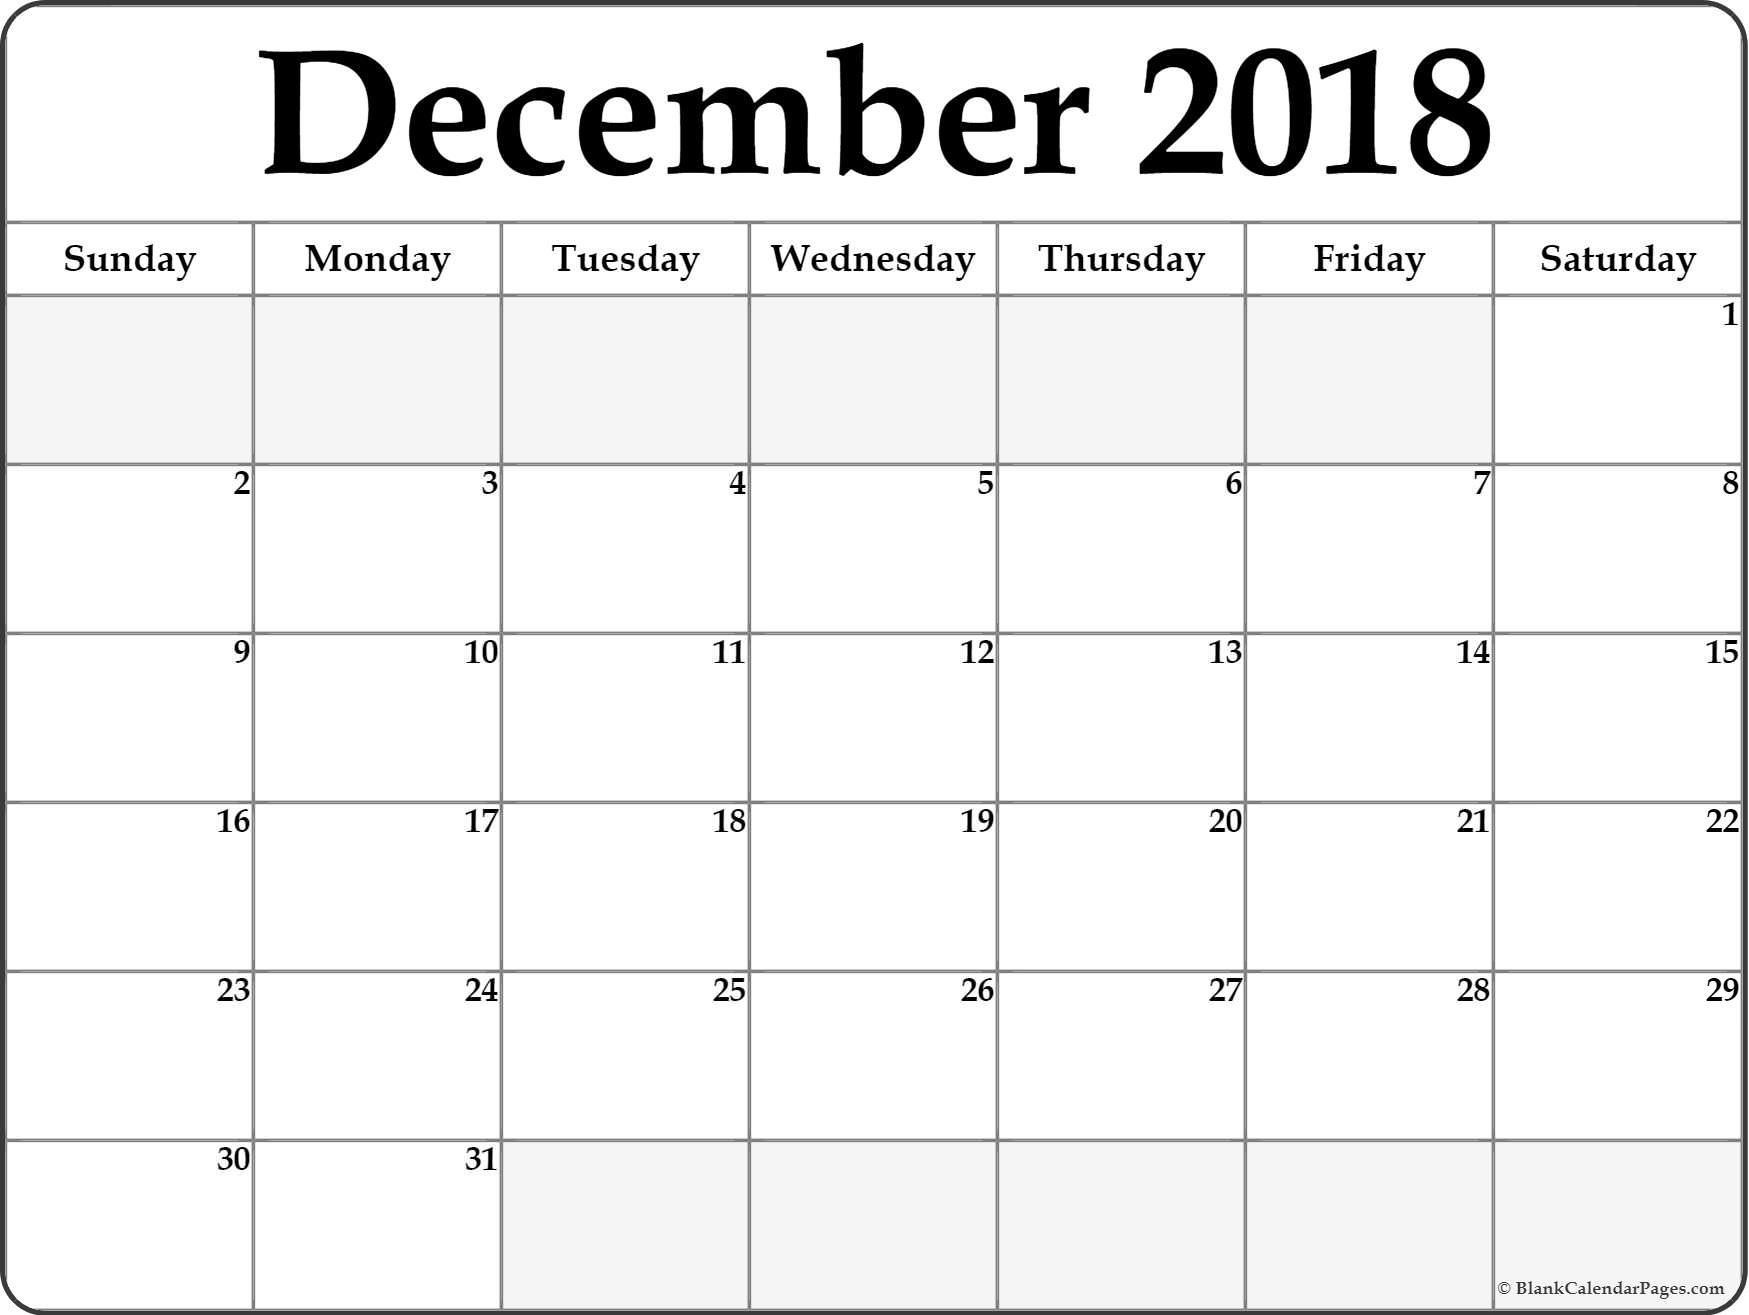 August – December 2018 Blank Calendar | Calendar Format Example throughout Free Printable Blank Calendar August-December